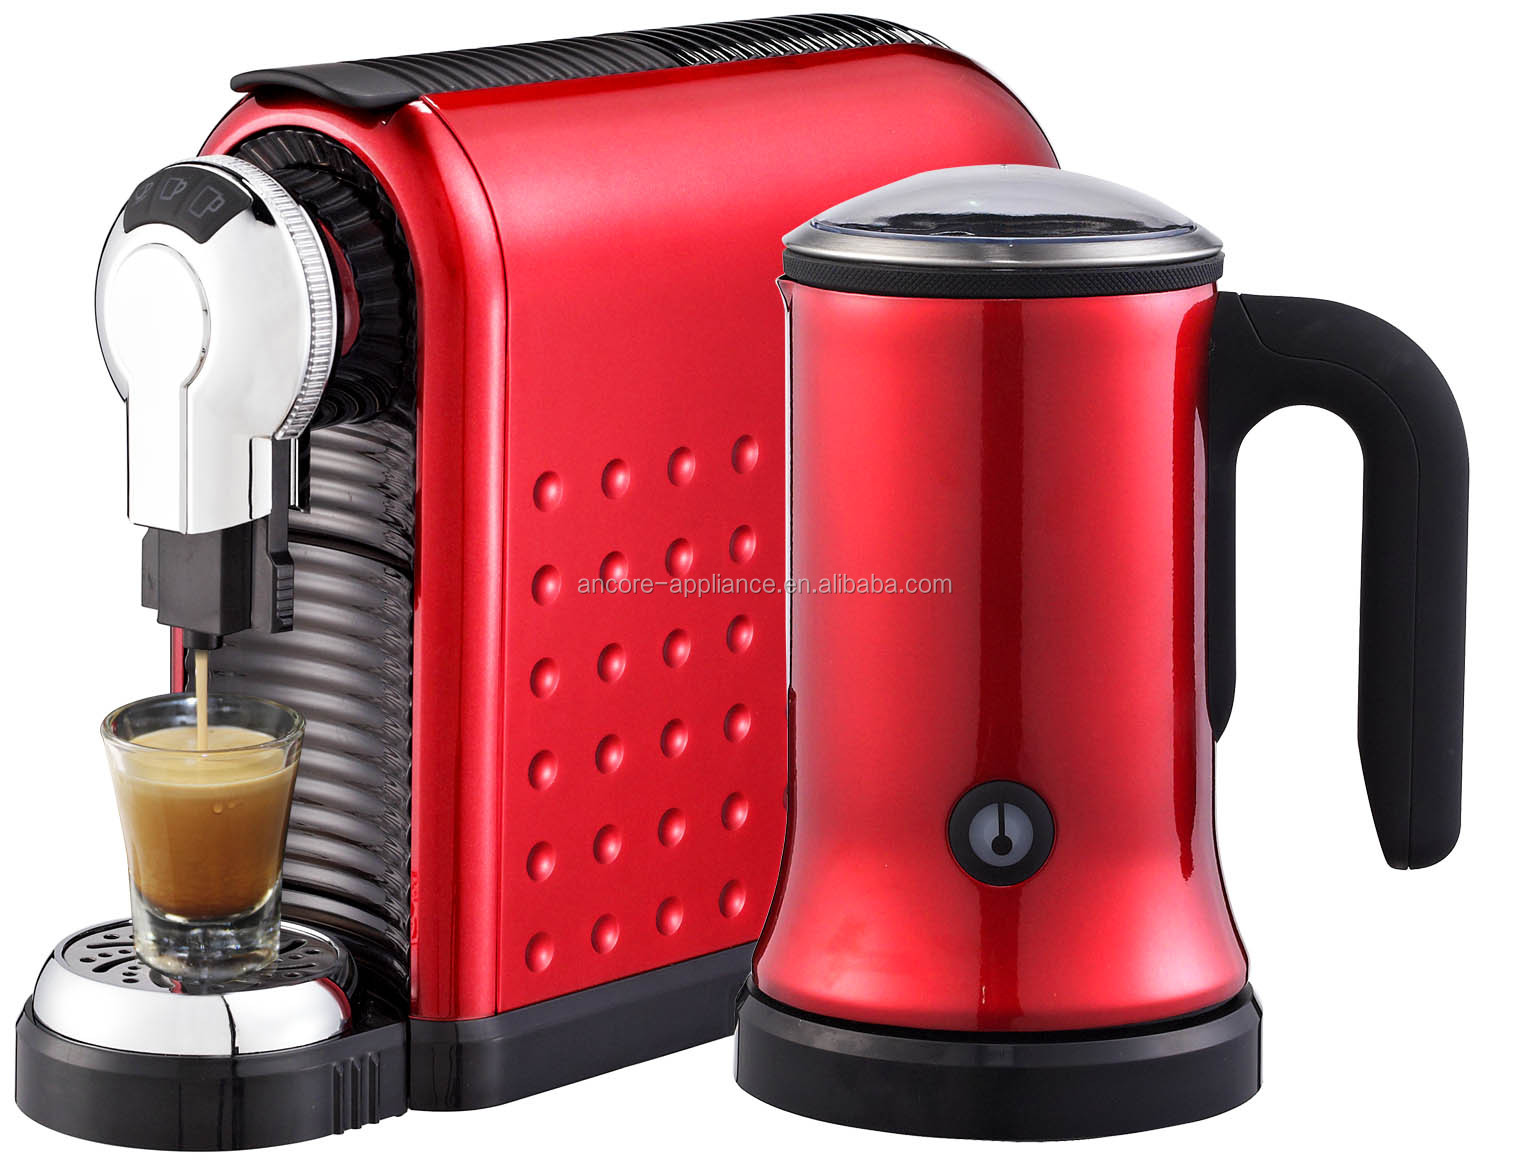 capsule coffee machine with milk frother